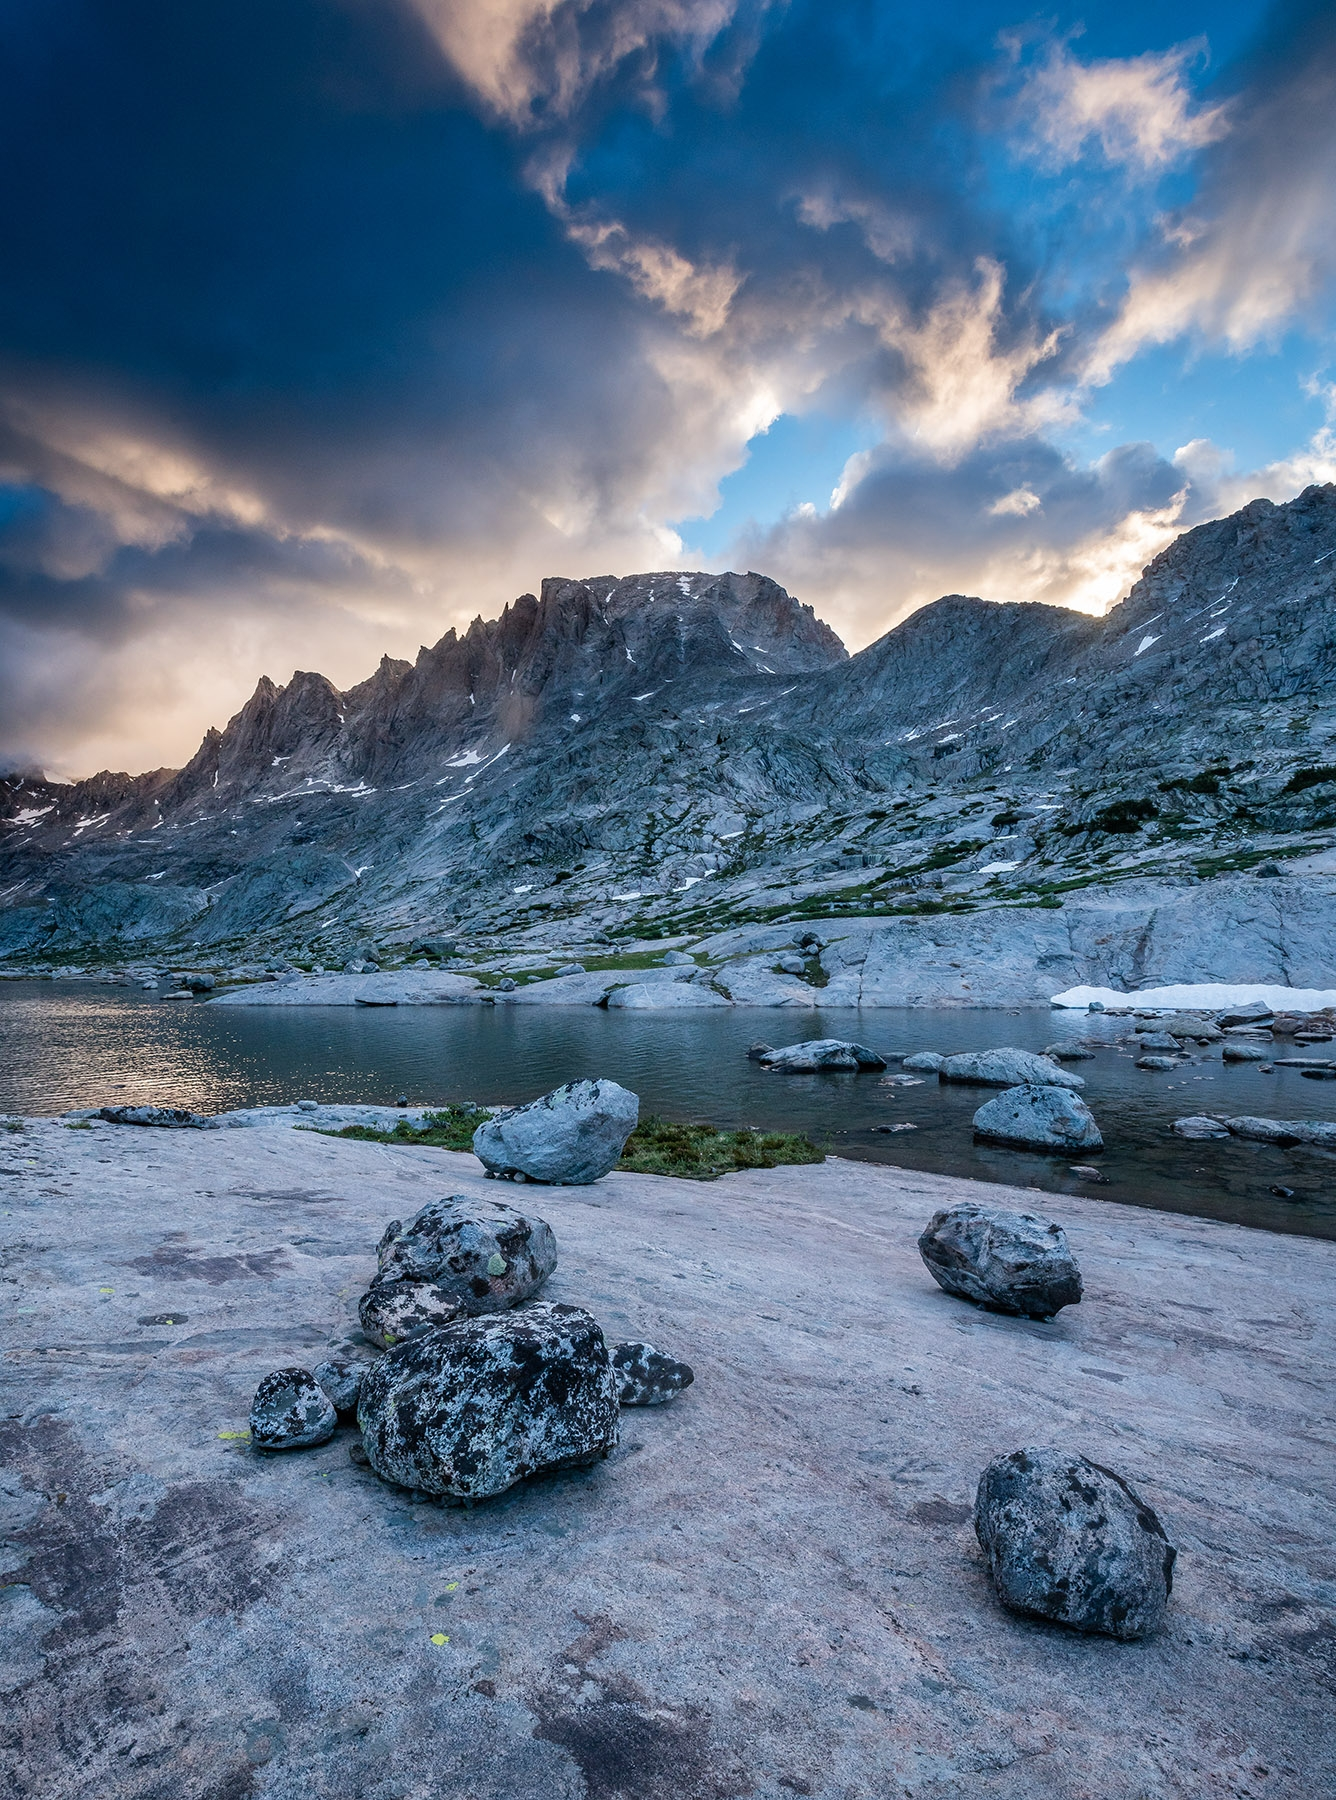 Sunrise over Fremont peak, titcomb basin, wind river range, wyoming